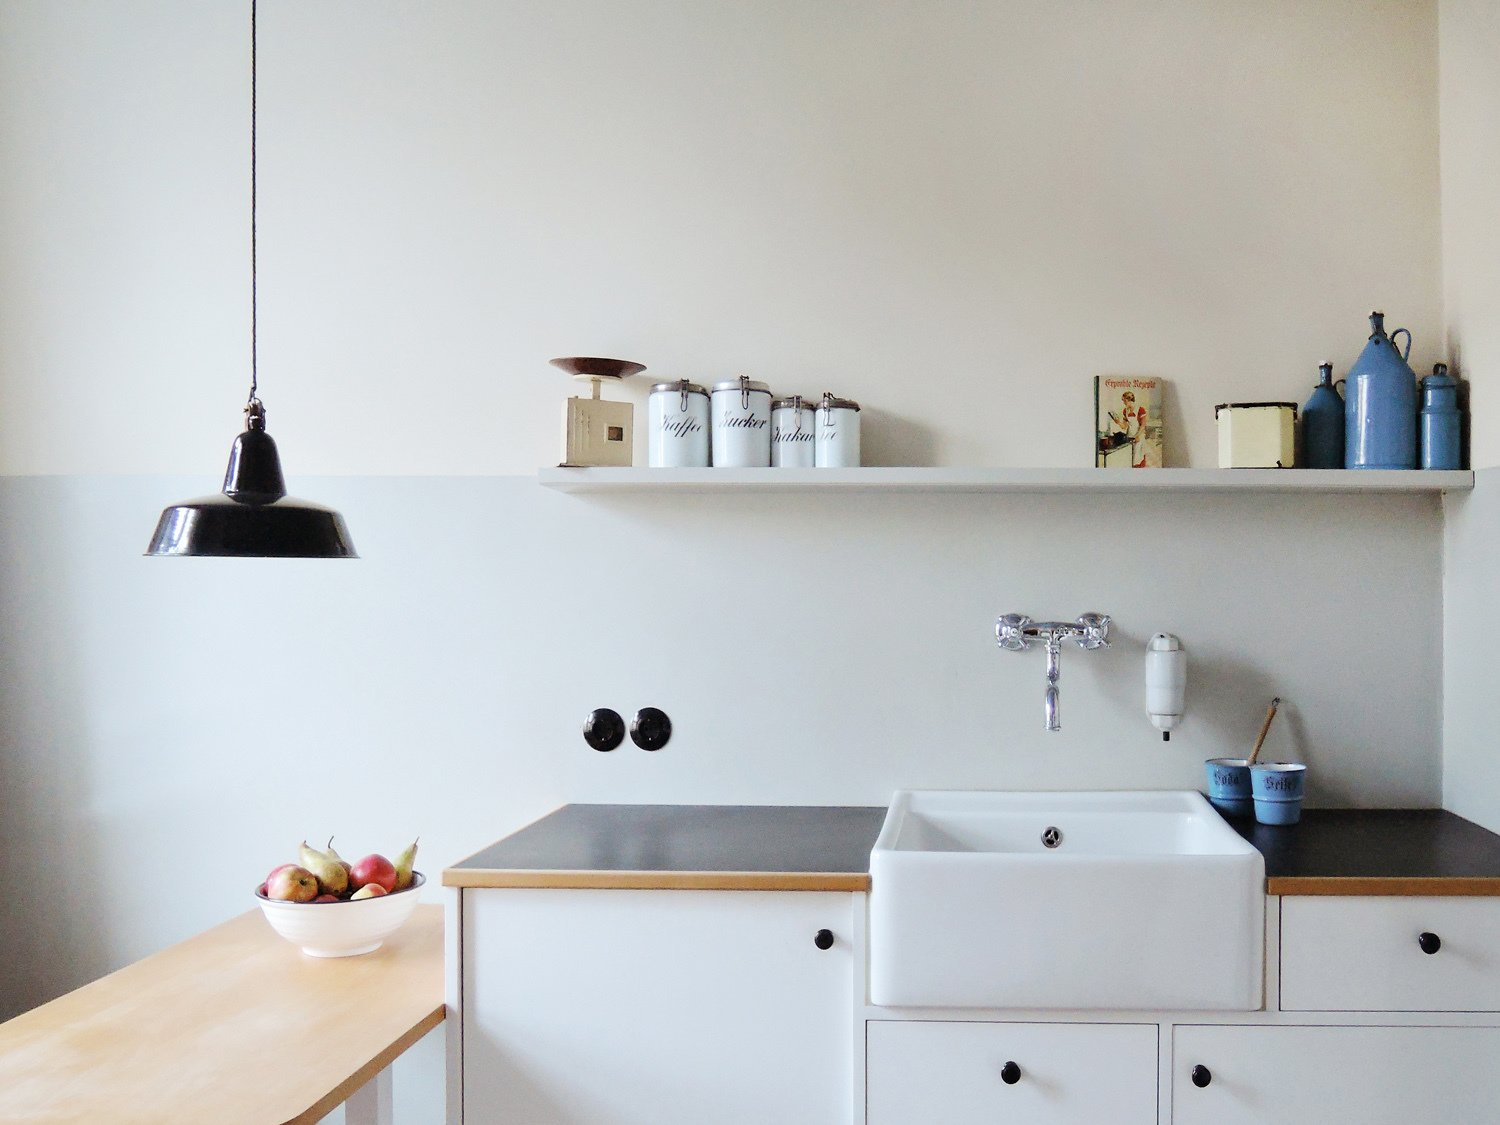 Kitchen, Laminate, White, Wood, Pendant, Track, Accent, Refrigerator, and Dishwasher kitchen design, modern comfort hidden + fully applicable  Best Kitchen White Track Photos from Taut´s Home (Tautes Heim) - Rentable museum of design and architecture of the 1920s